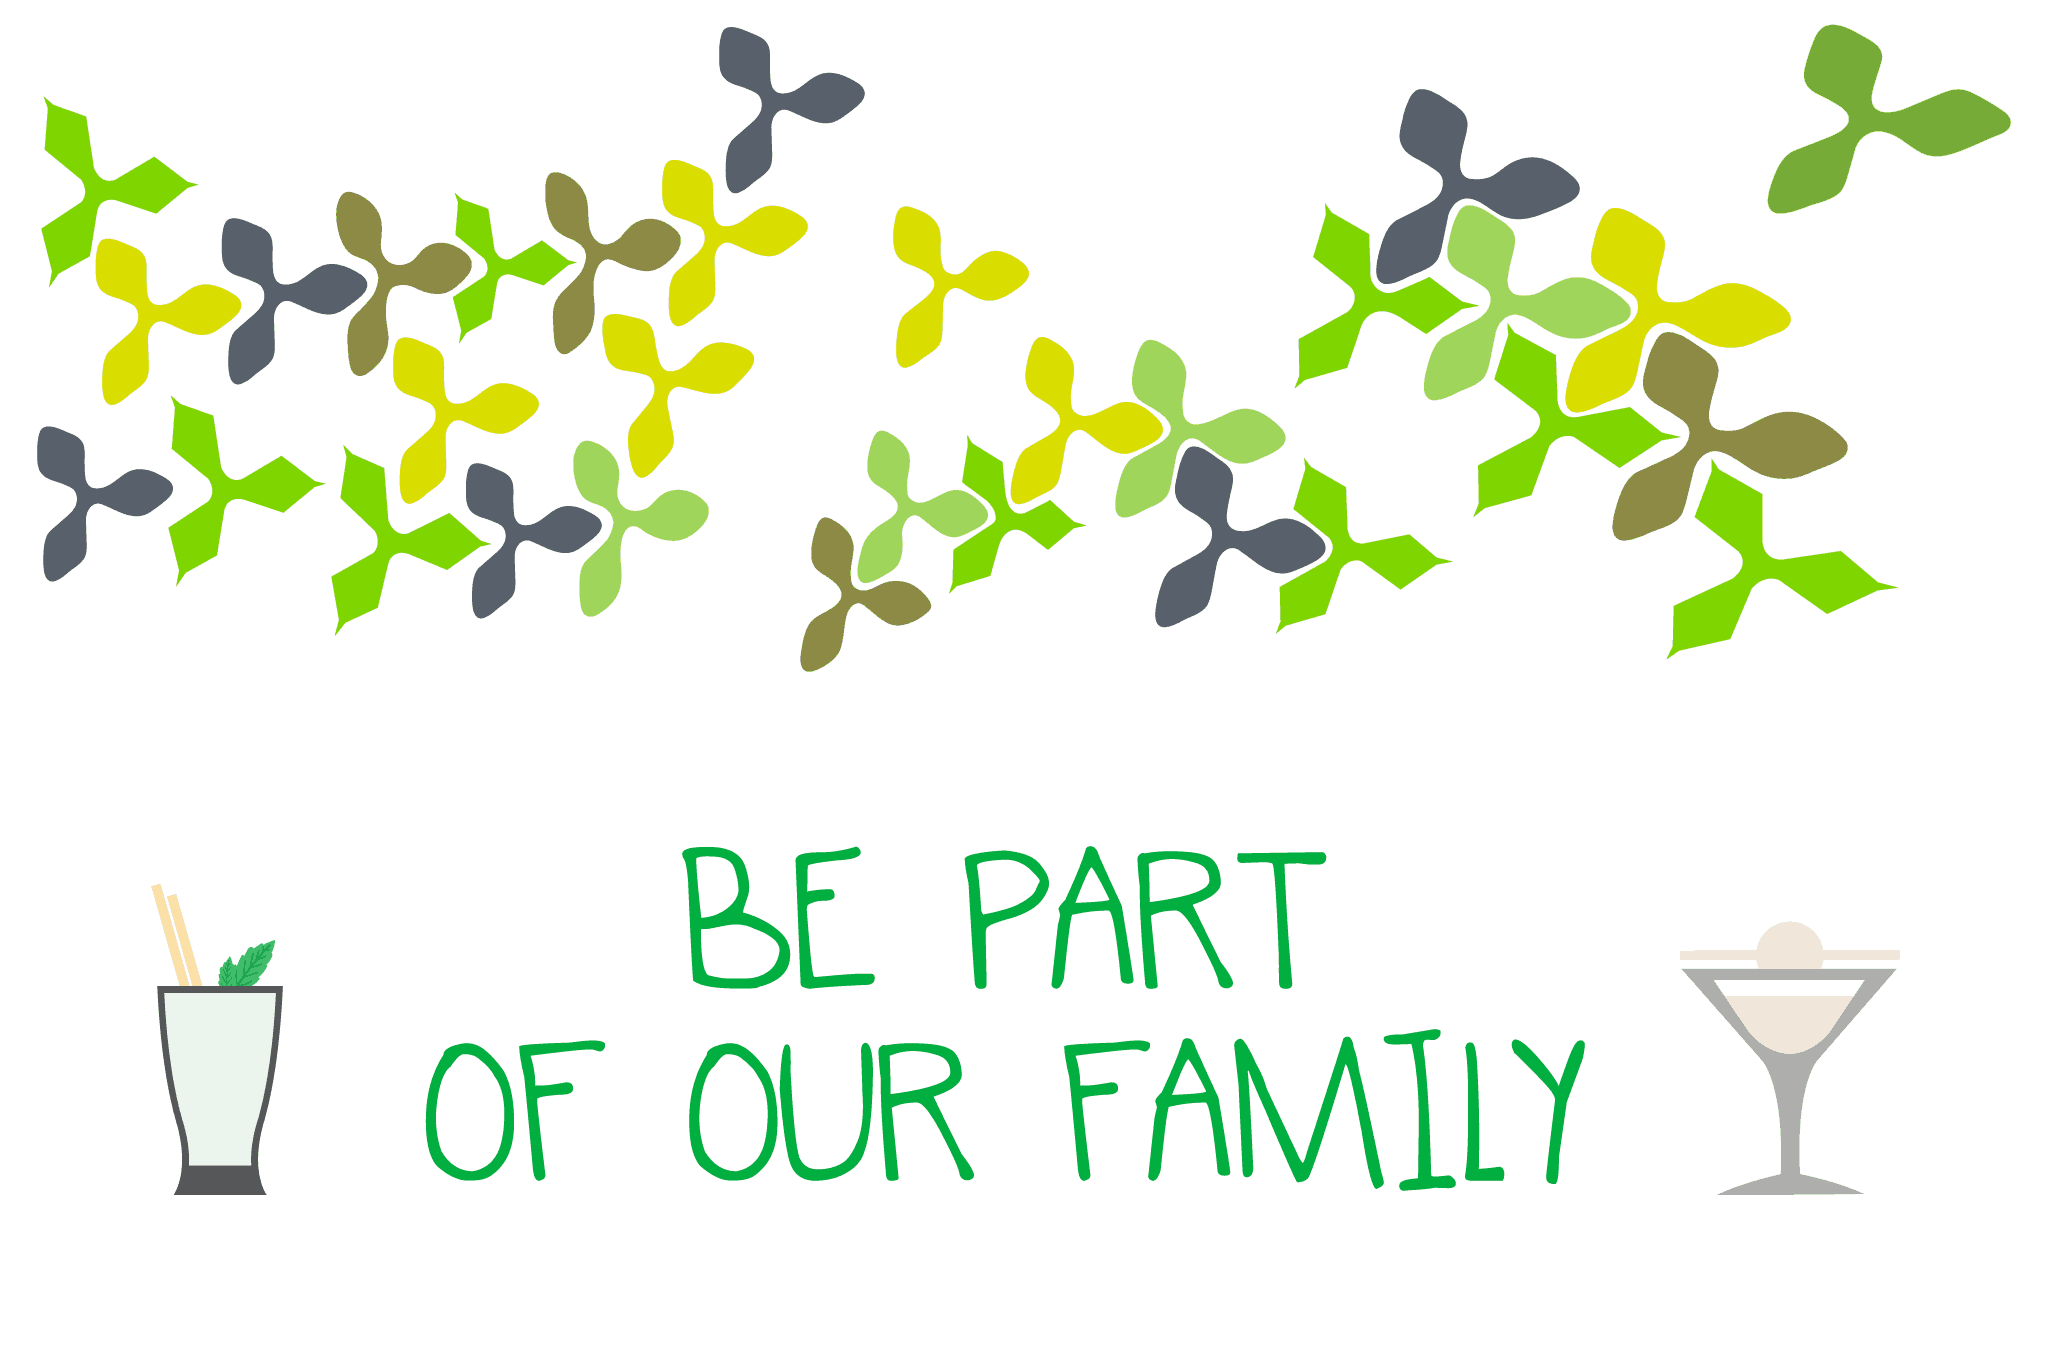 JOIN OUR FAMILY